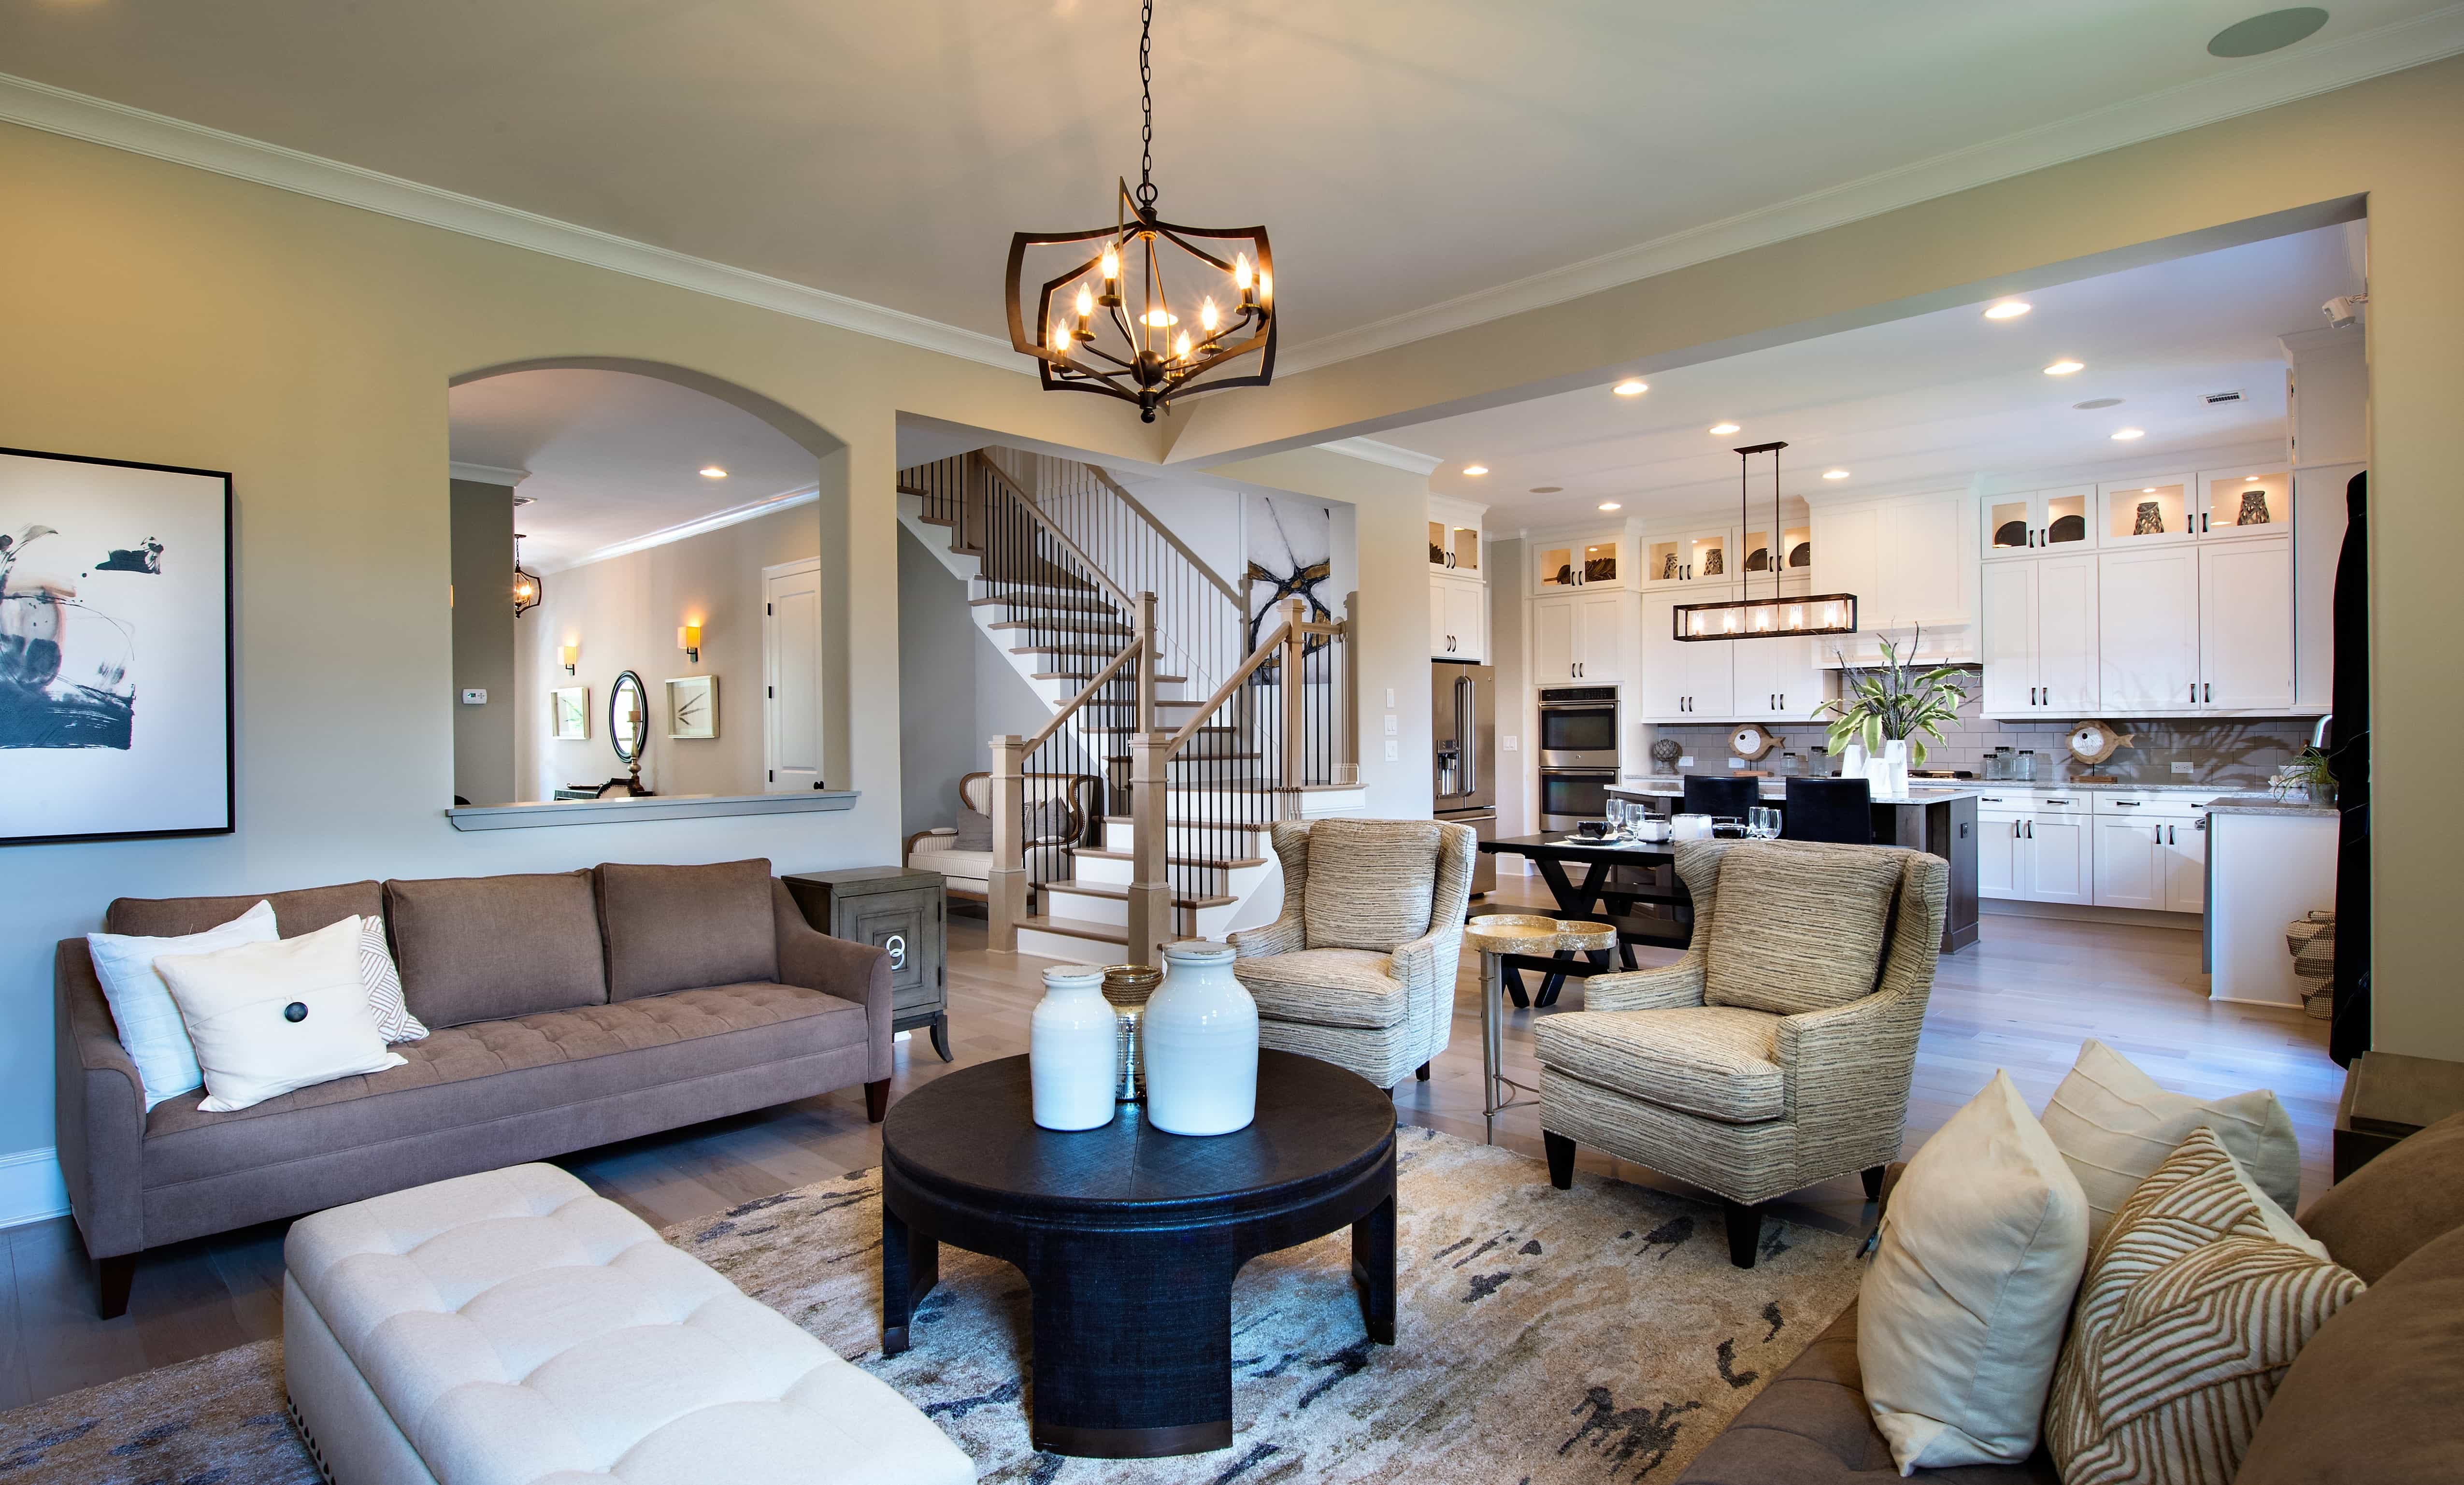 The Providence Group Voted Best Home Builder in Atlanta